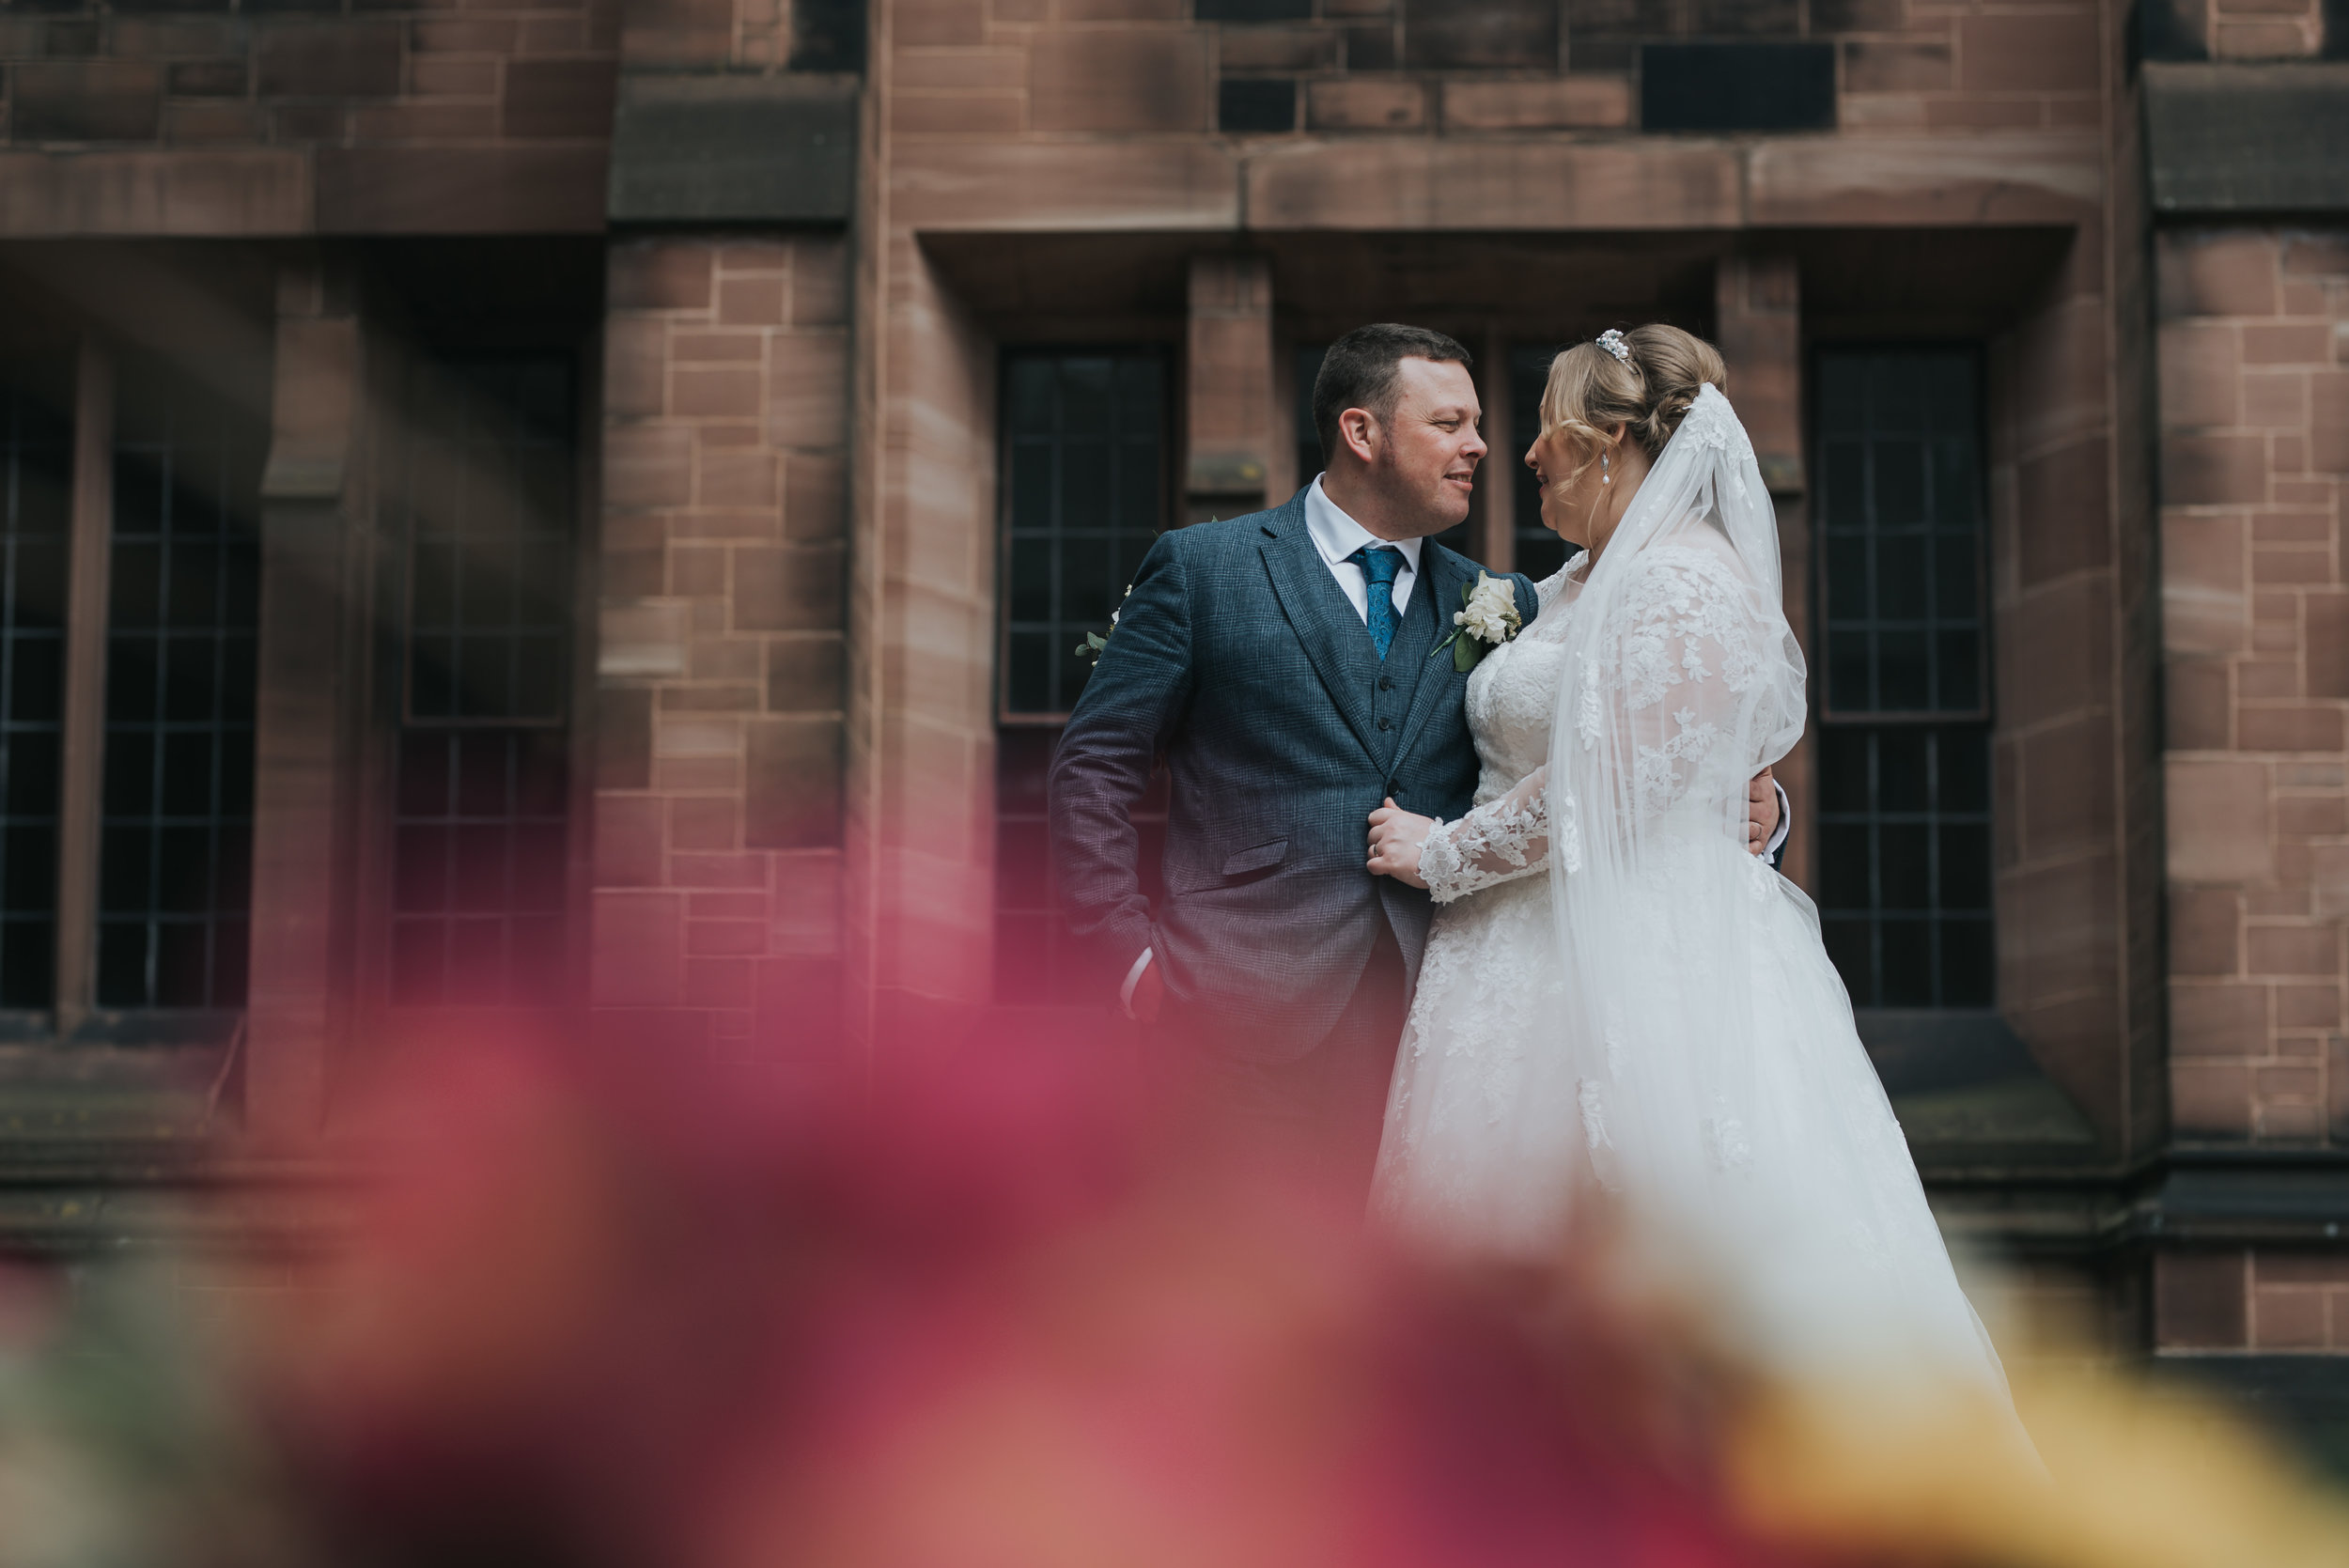 Beautiful relaxed wedding at Bolton School wedding venue